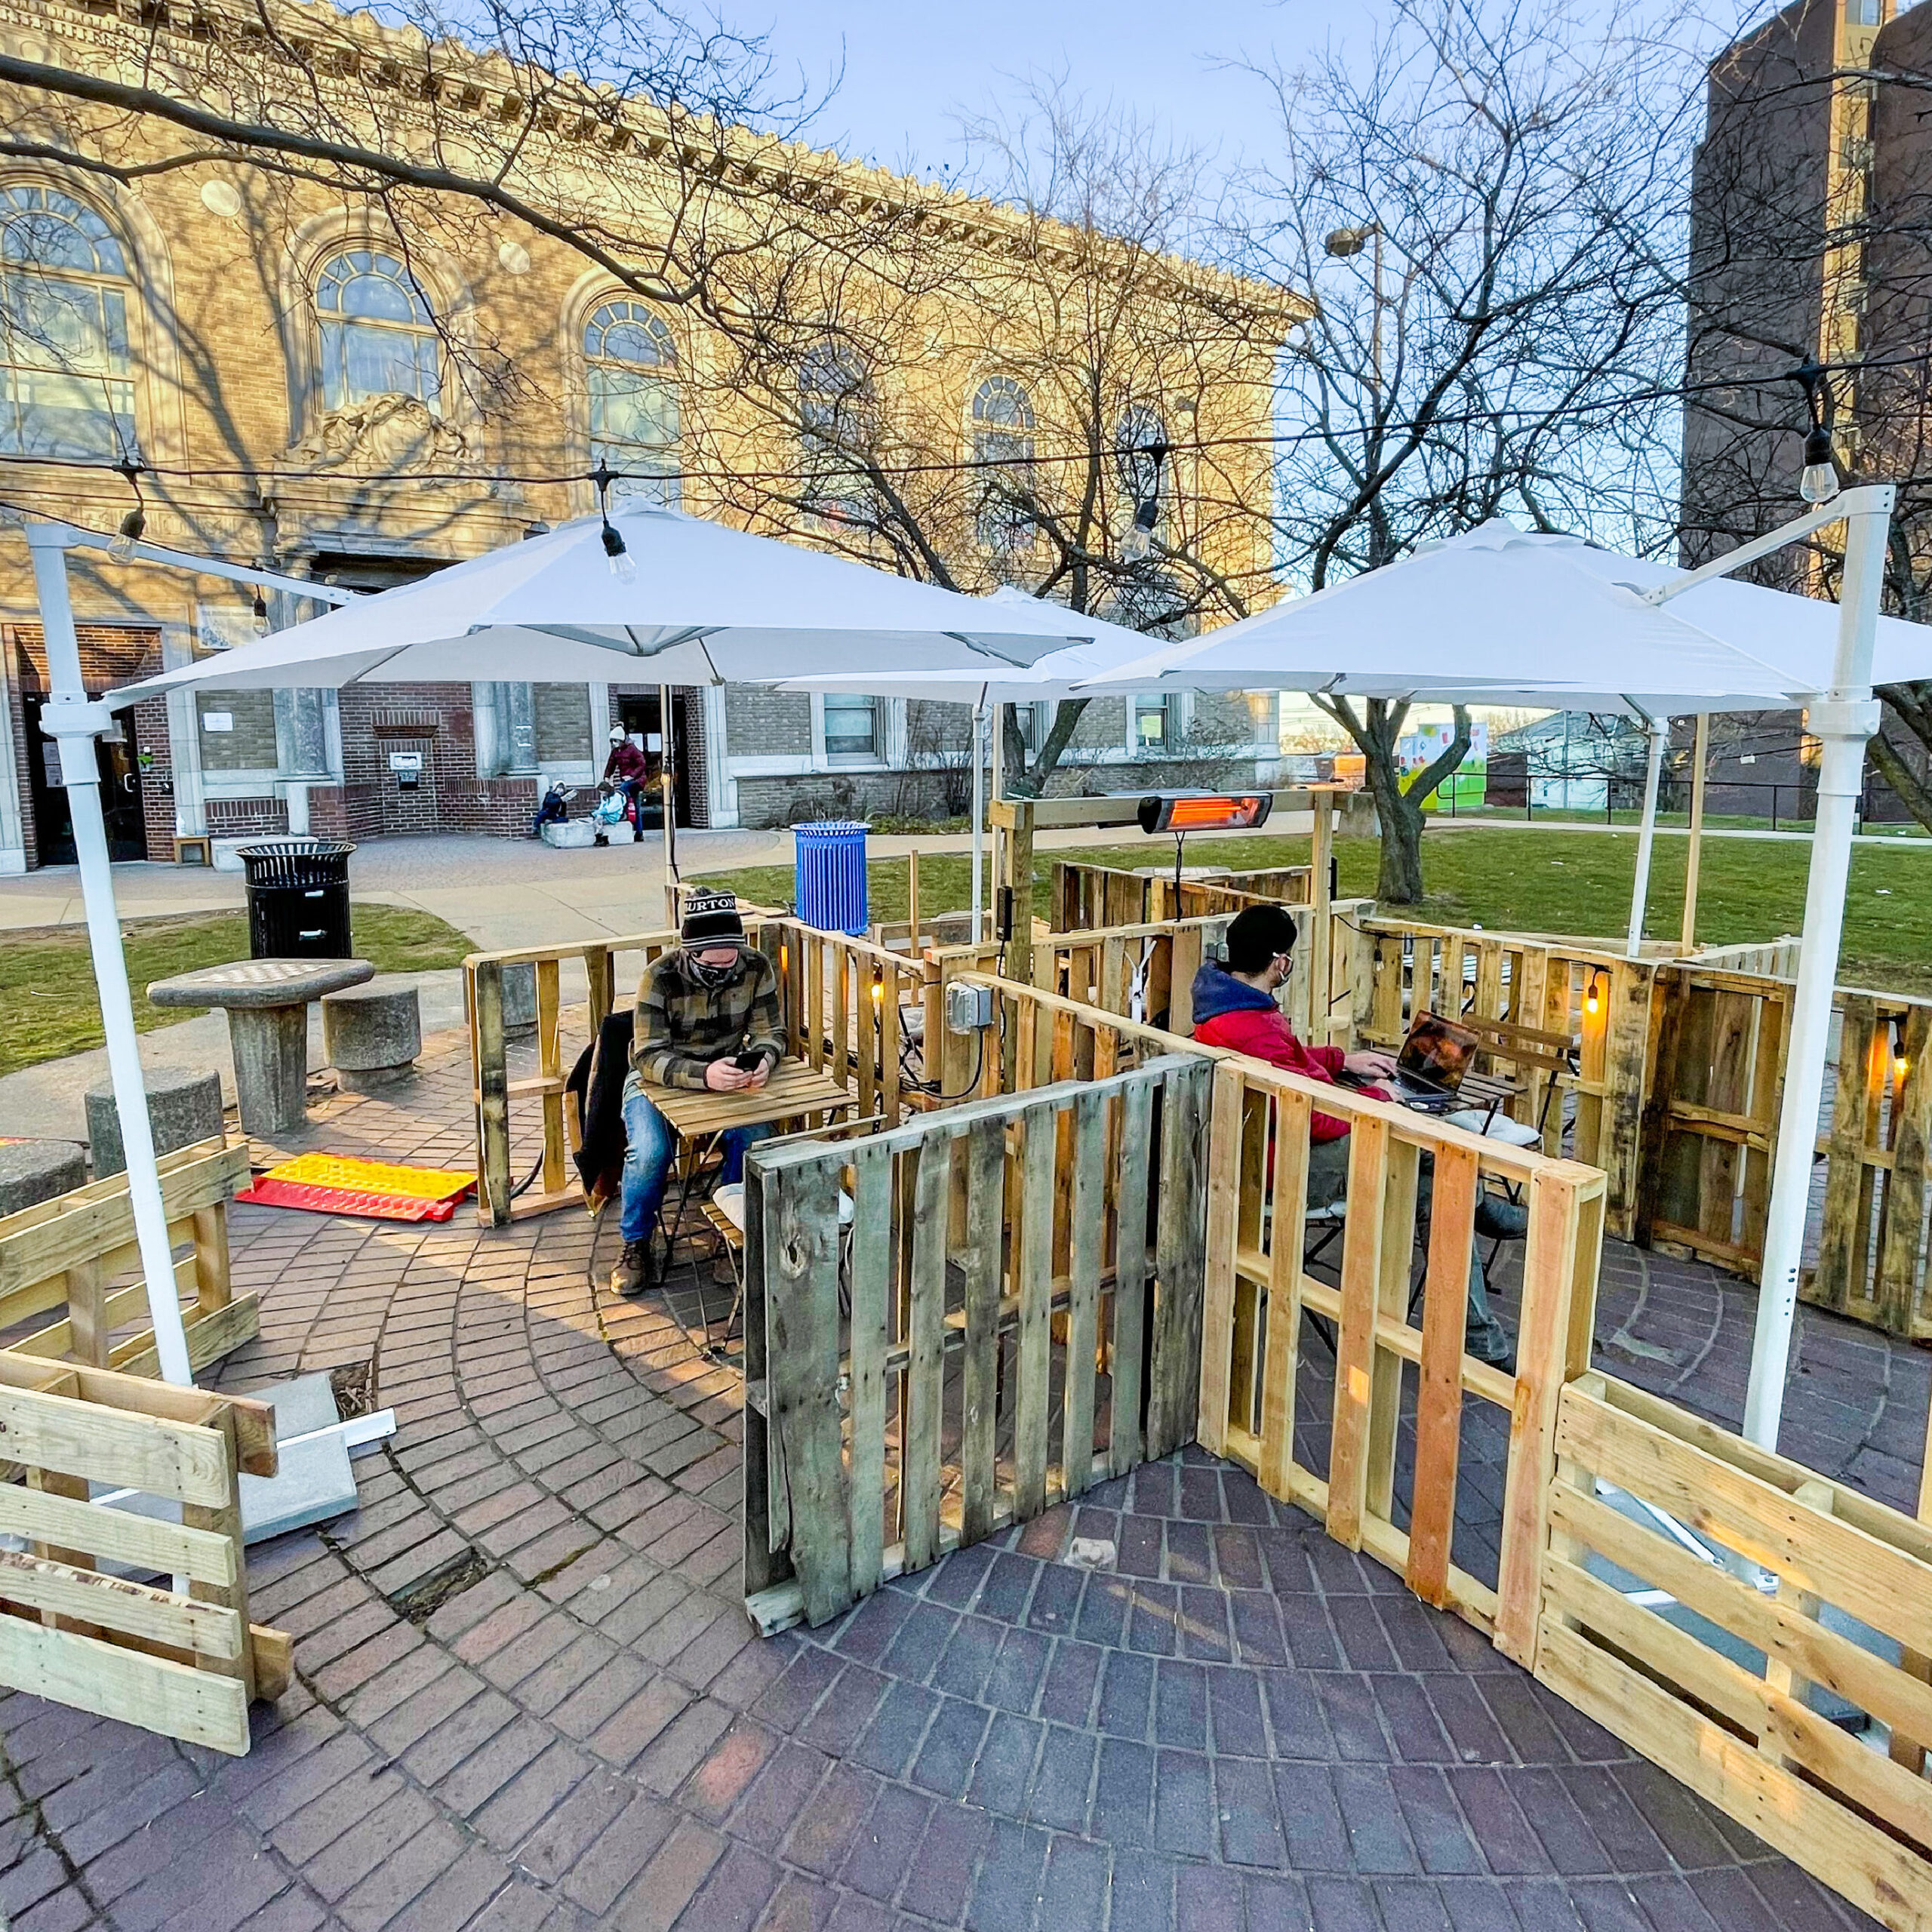 Pallets, umbrellas, and chairs make a outdoor seating area in the courtyard of the Somerville Public Library